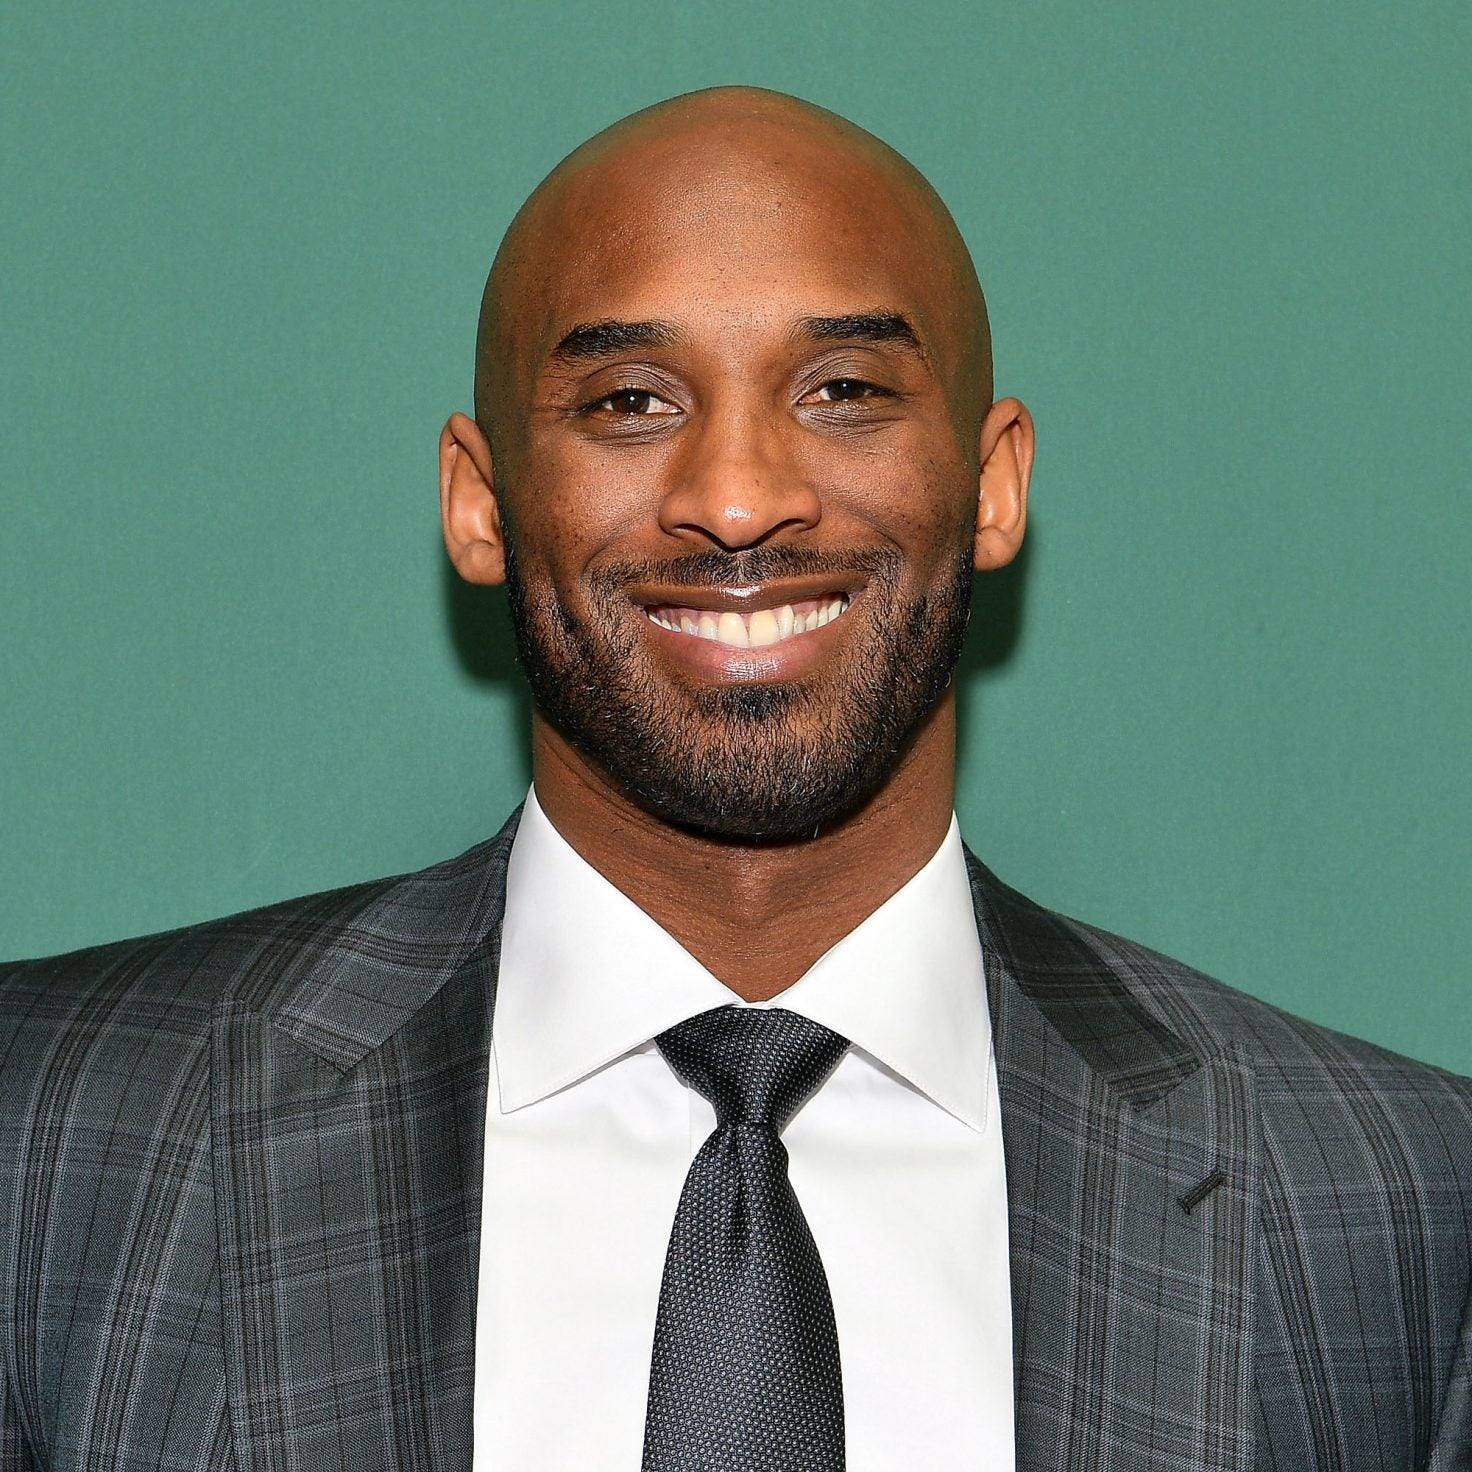 Kobe Bryant Visited His Church Hours Before Crash